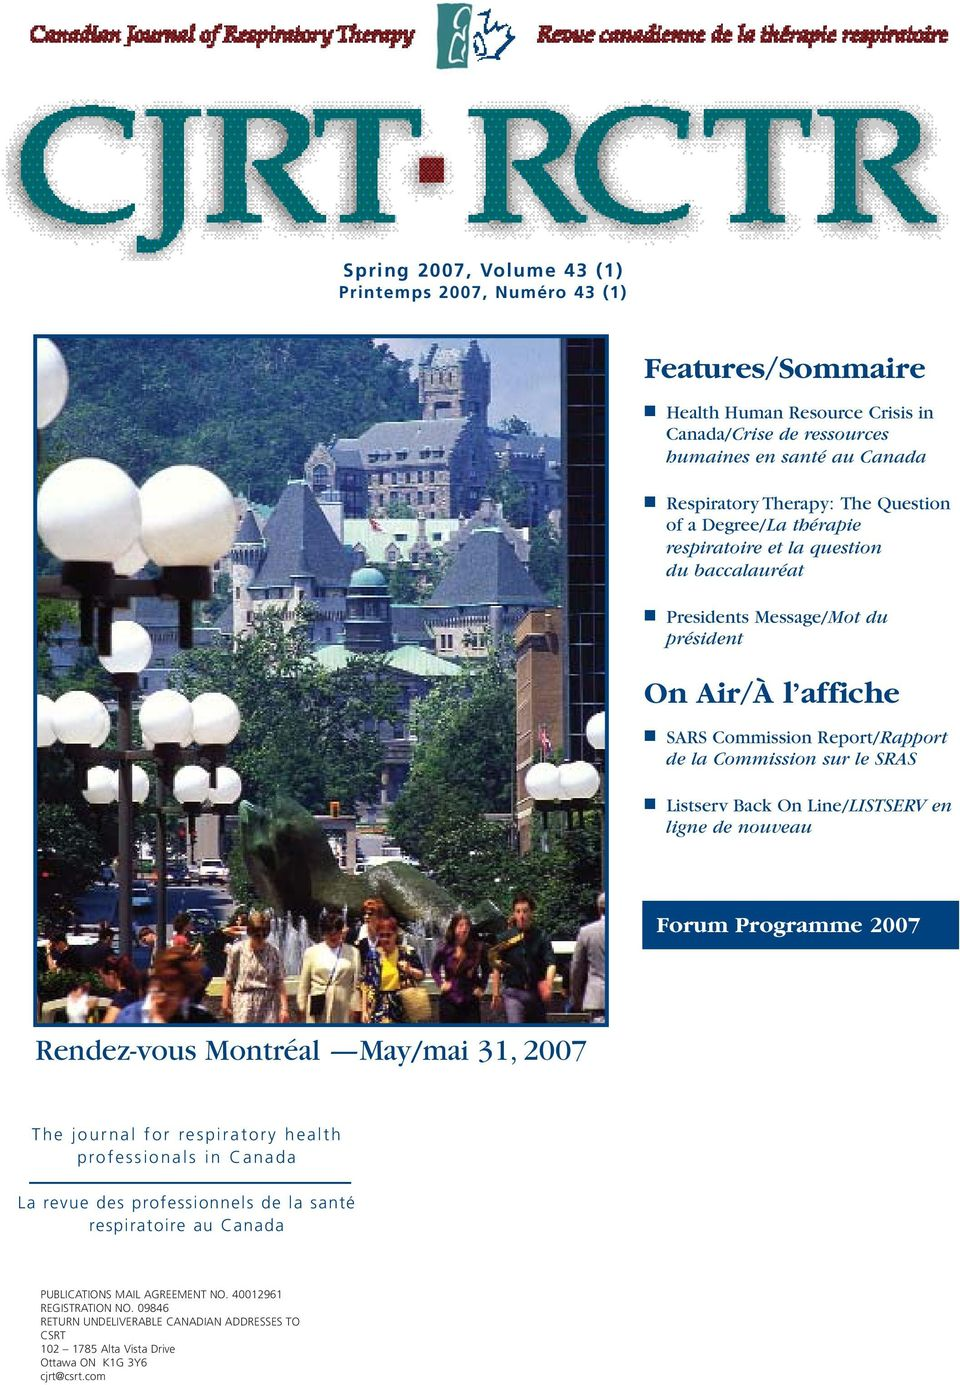 Listserv Back On Line/LISTSERV en ligne de nouveau Forum Programme 2007 Rendez-vous Montréal May/mai 31, 2007 The journal for respiratory health professionals in Canada La revue des